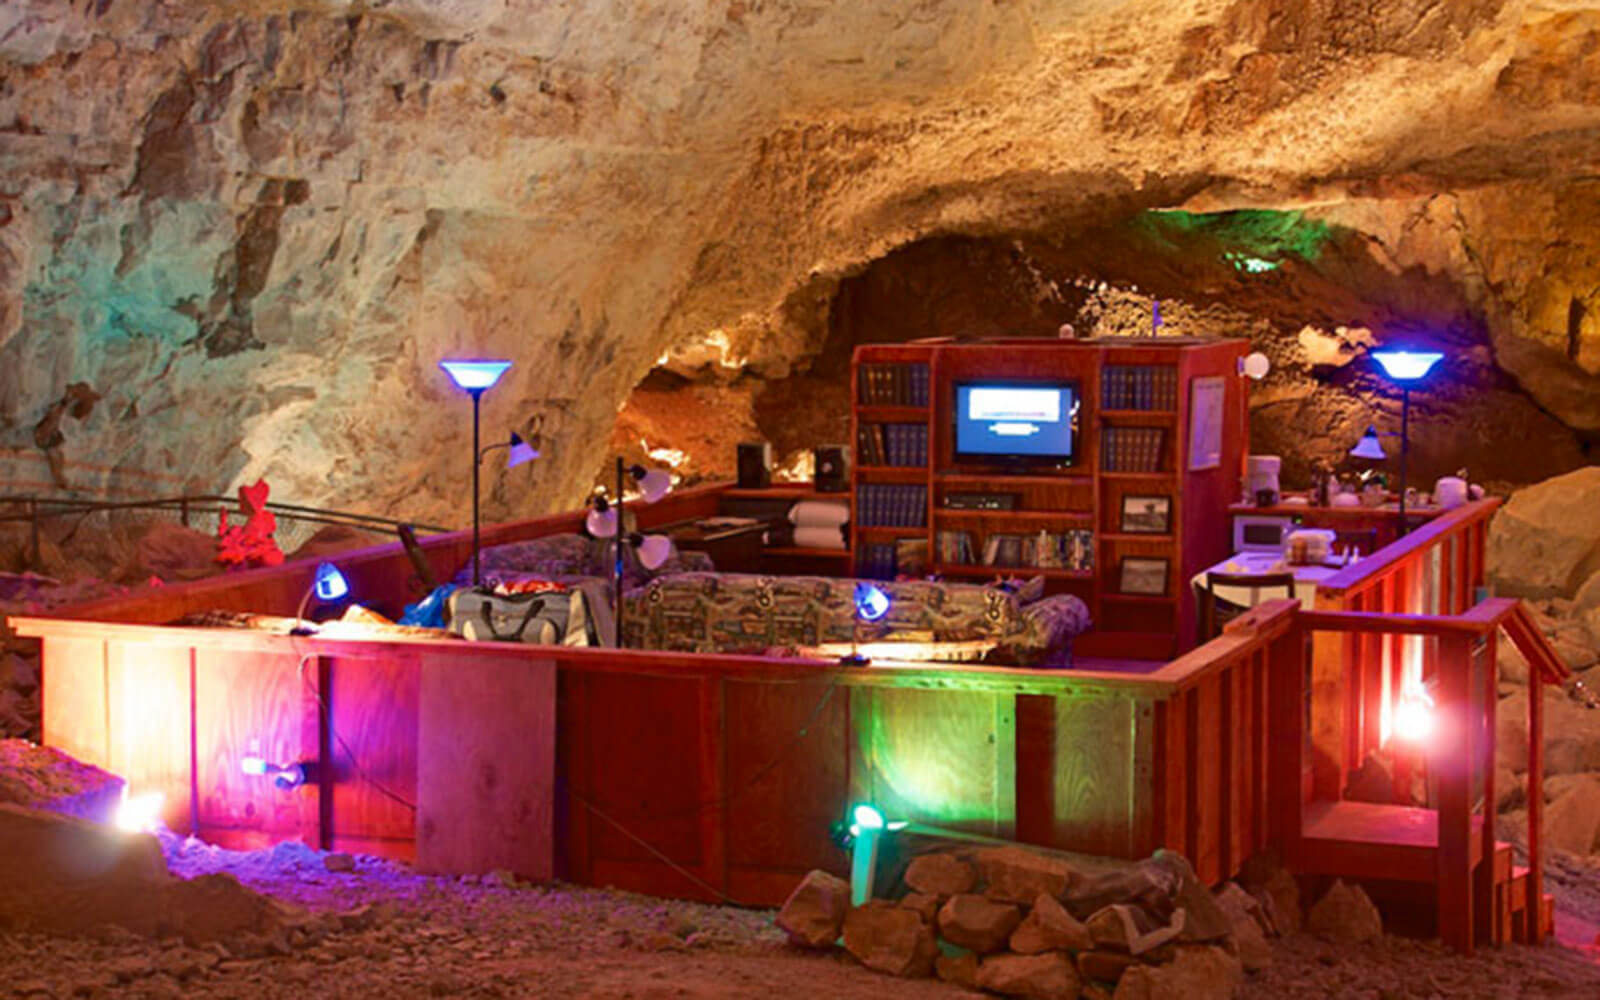 5 Reasons Why This Unbelievable Grand Canyon Caverns Room Is The Best Place to Spend a Night in Arizona